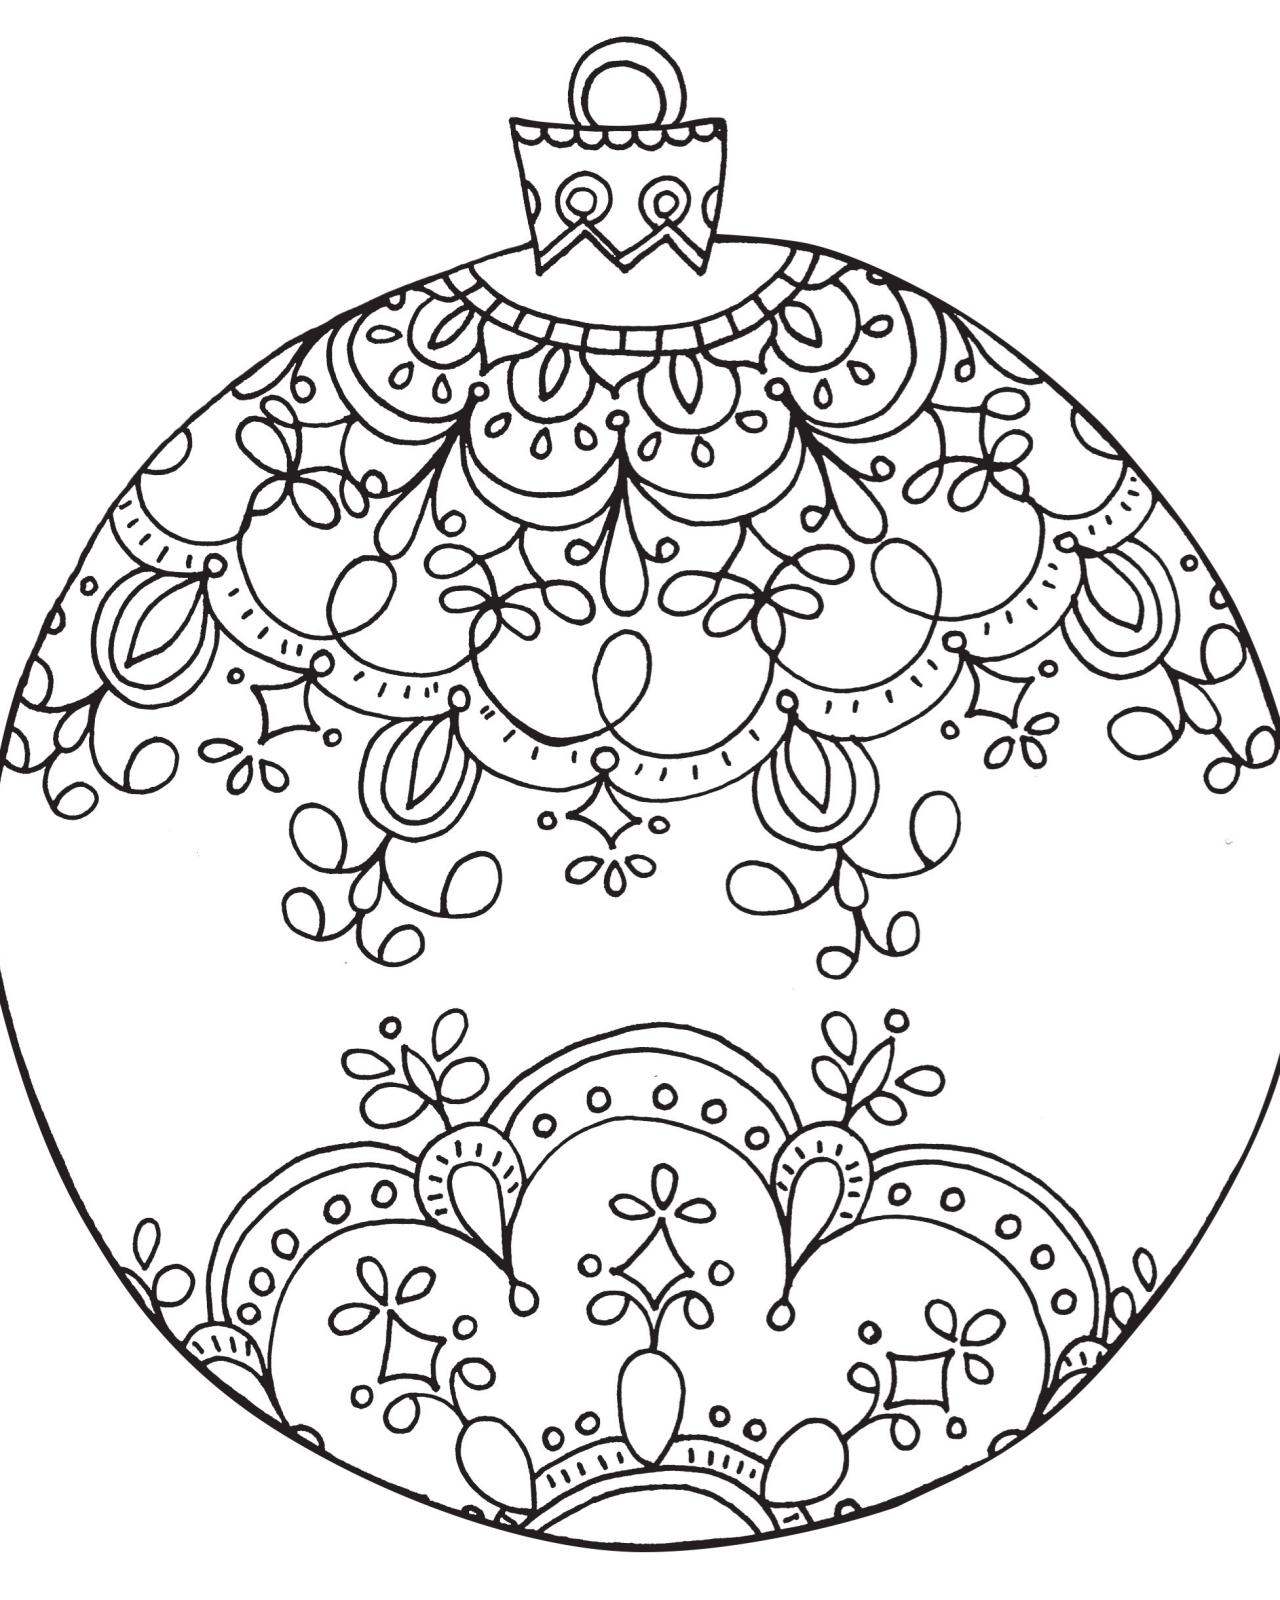 1280x1600 Innovation Design Adult Coloring Pages To Print Heart Pictures